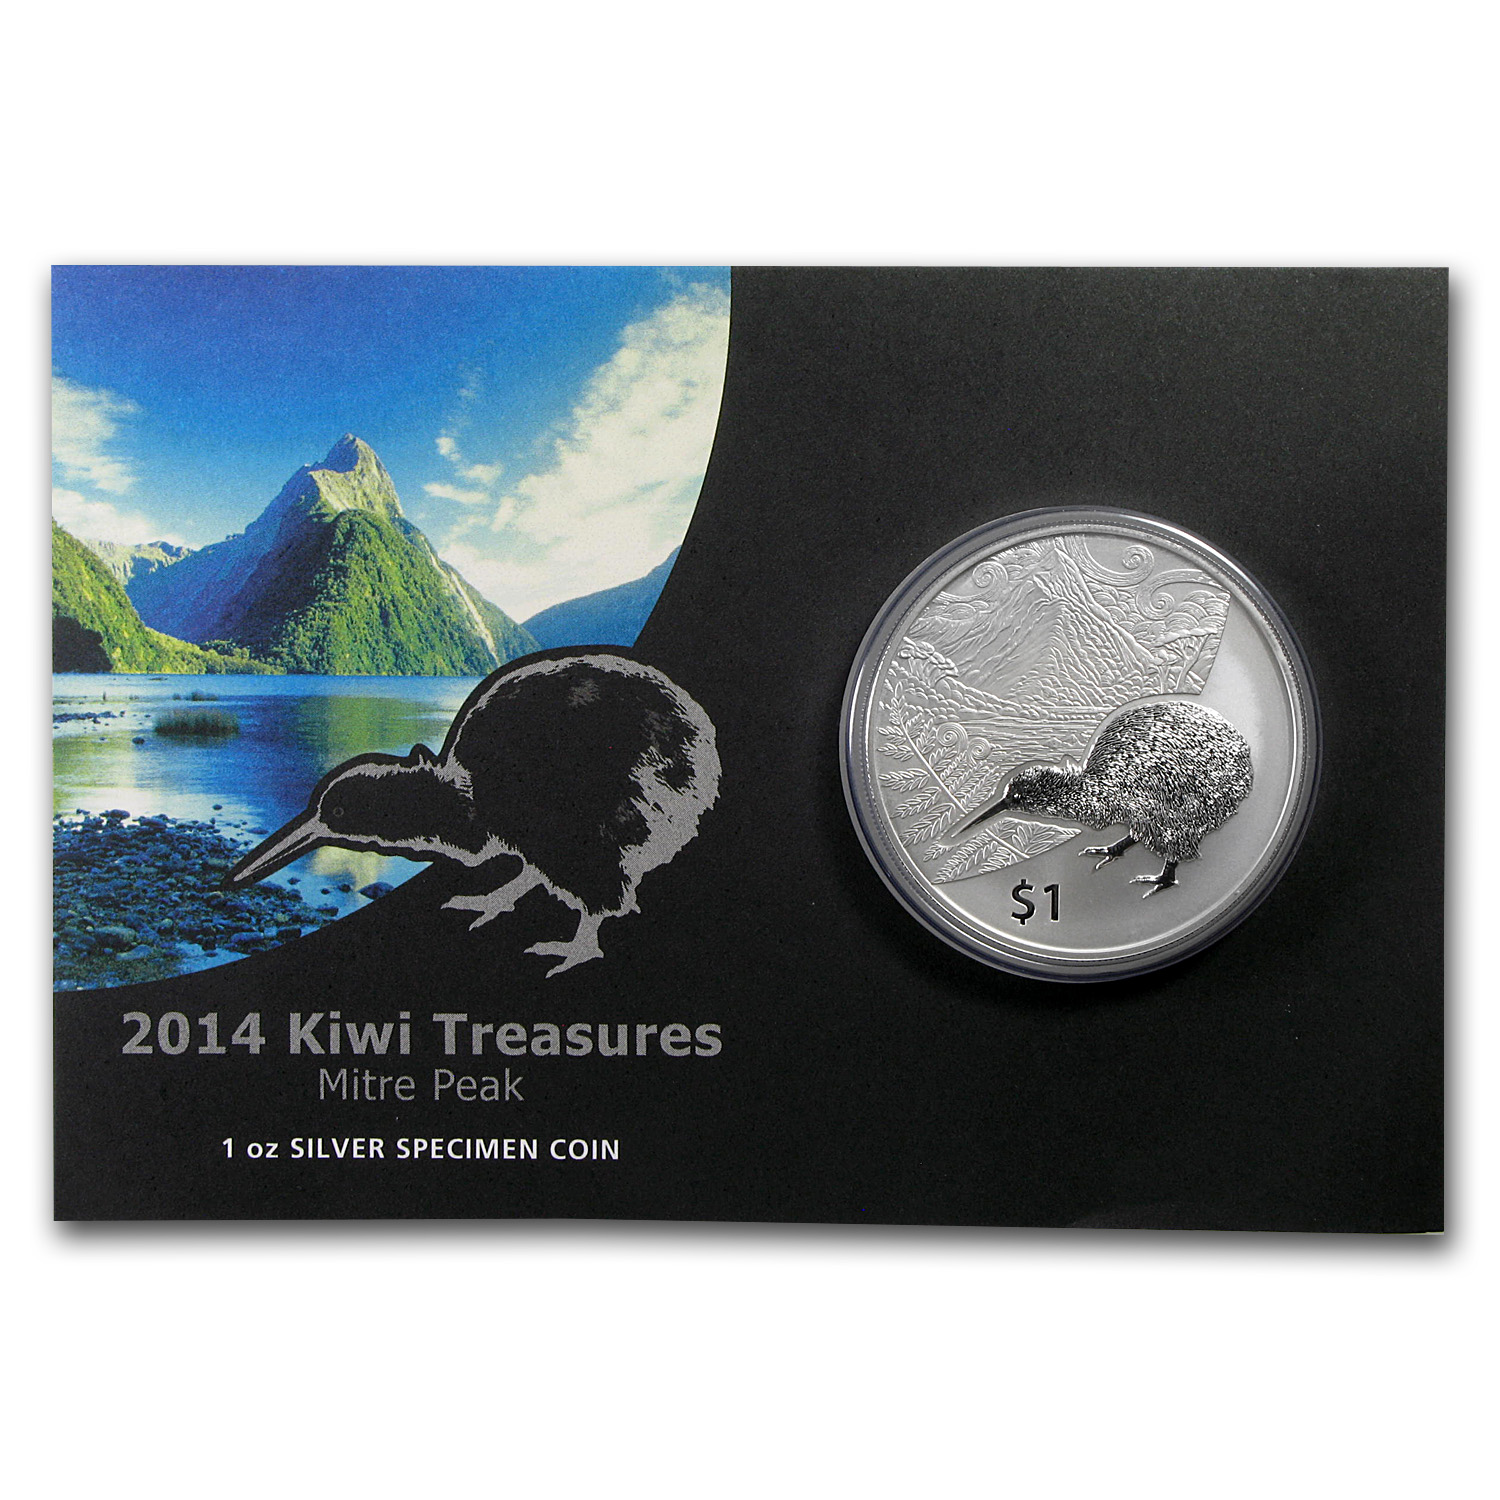 2014 1 oz Silver New Zealand Treasures $1 Kiwi Specimen